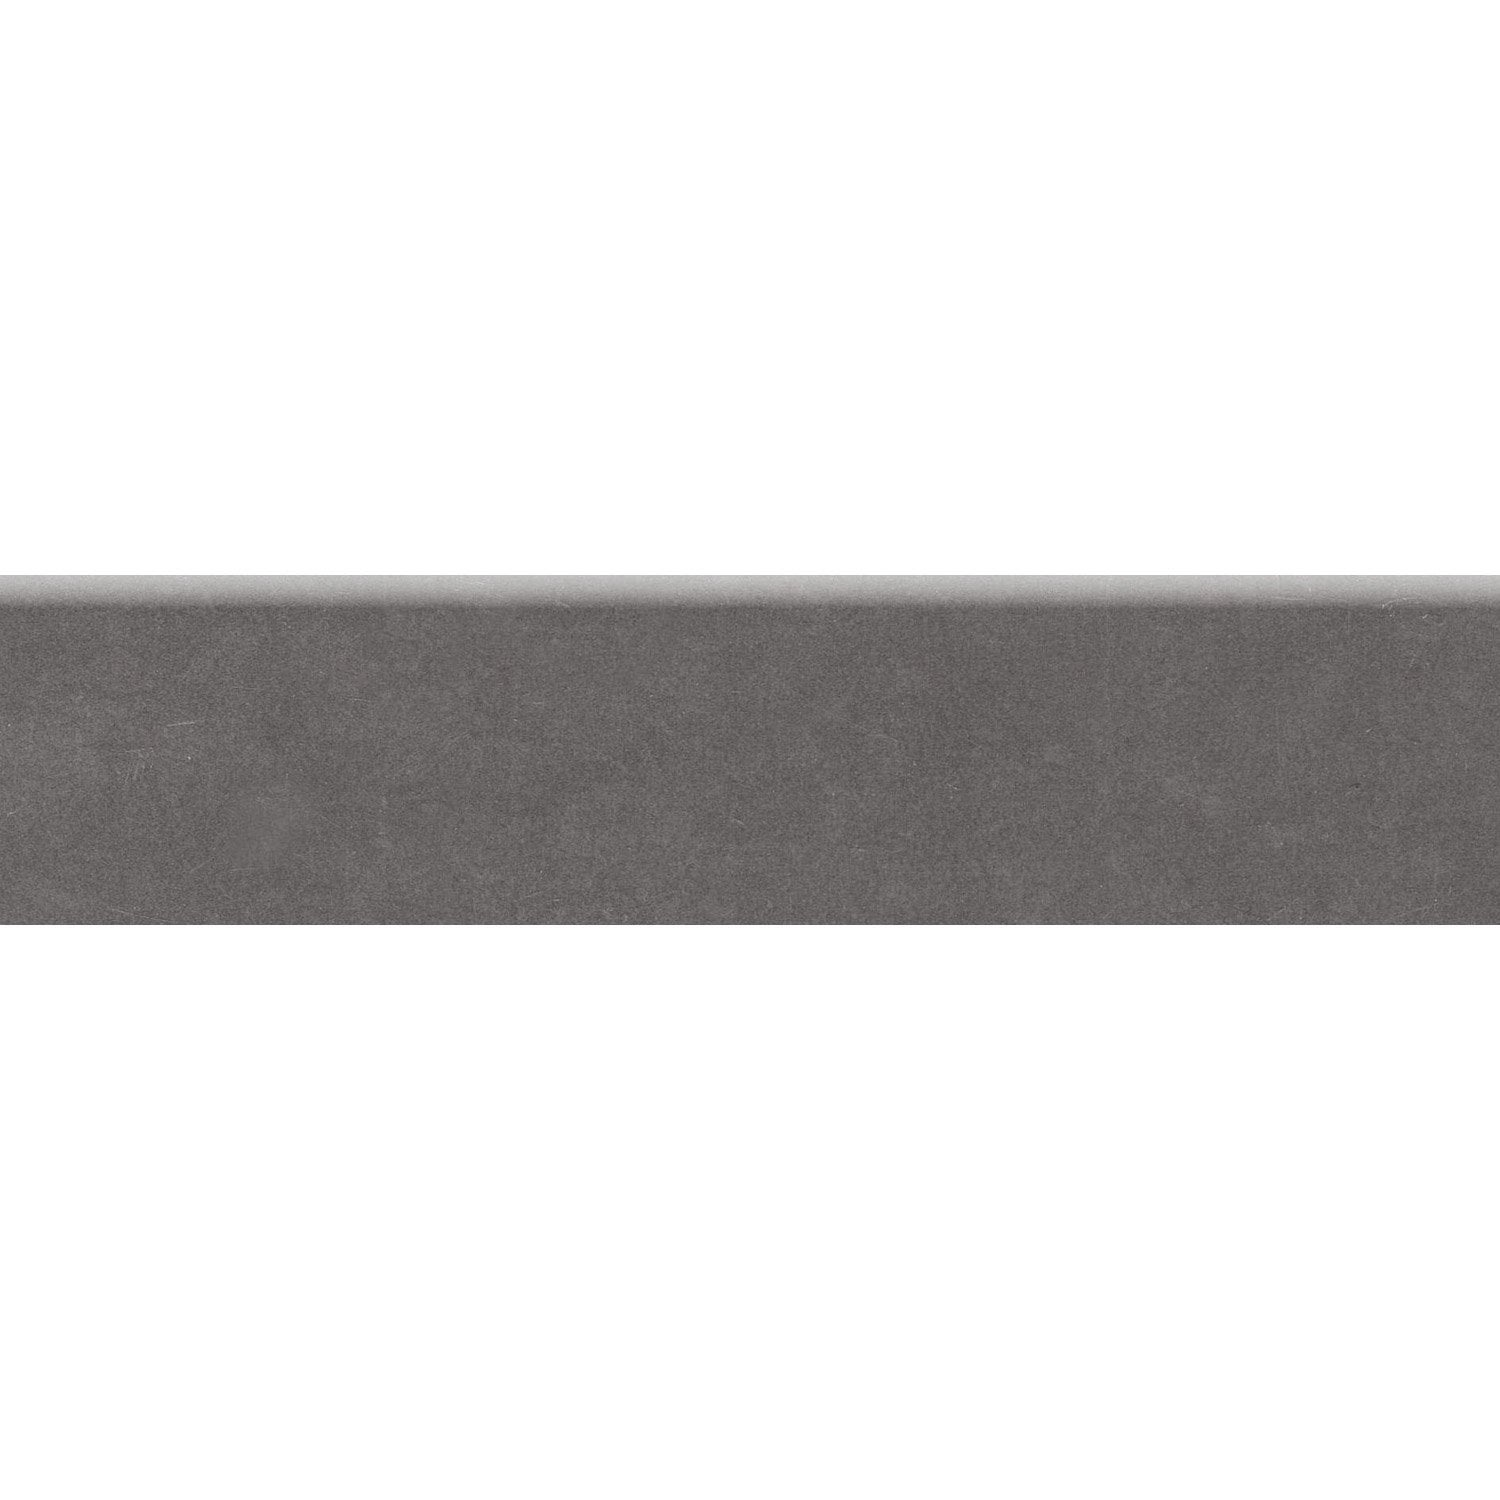 3 plinthes aero anthracite 7 x 30 cm leroy merlin for Plinthes carrelage exterieur